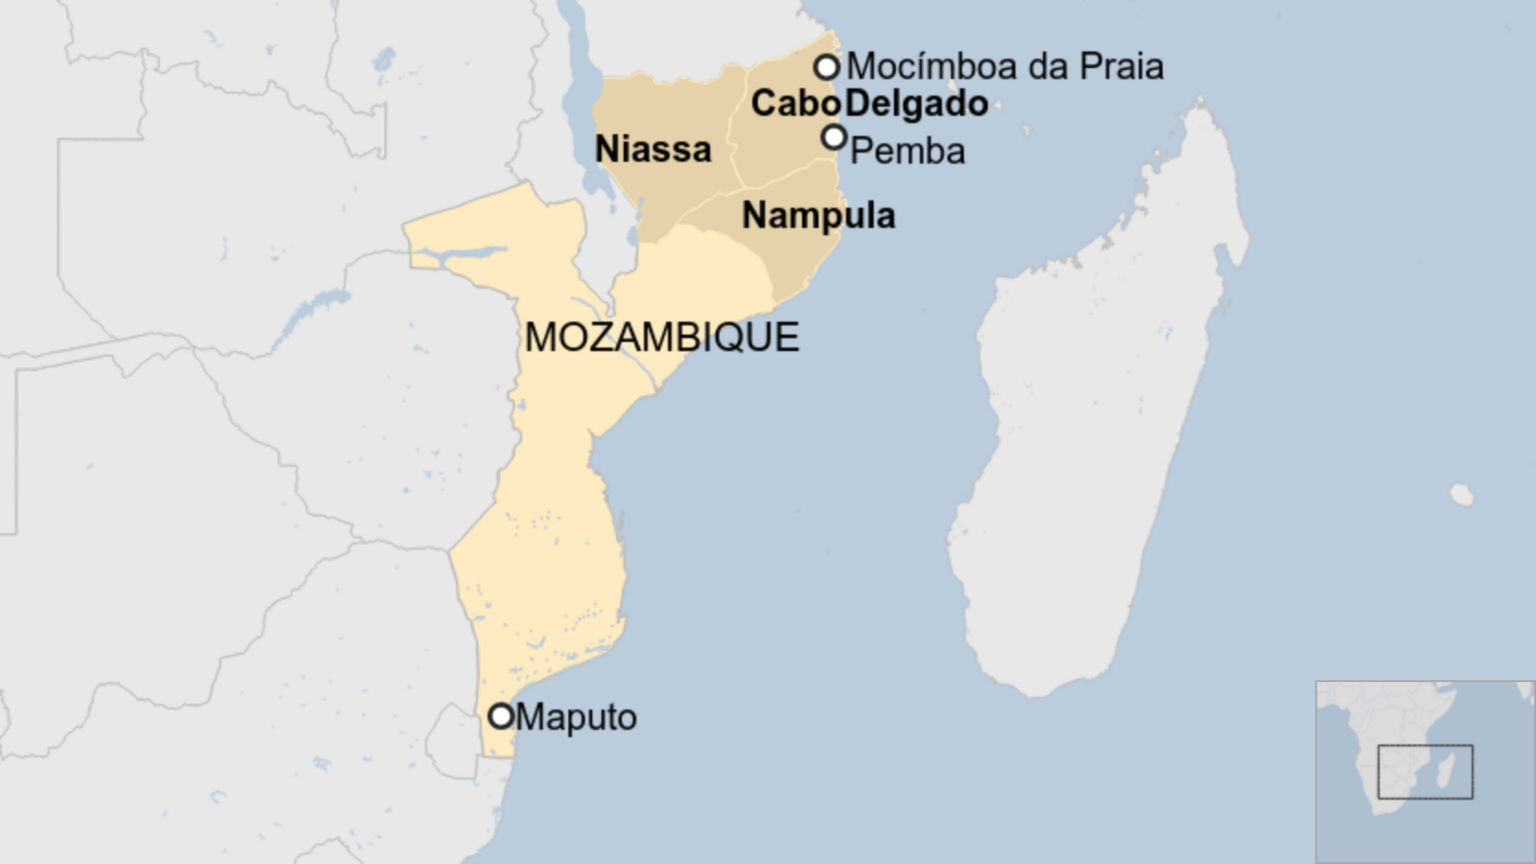 Map of Mozambique showing northern provinces